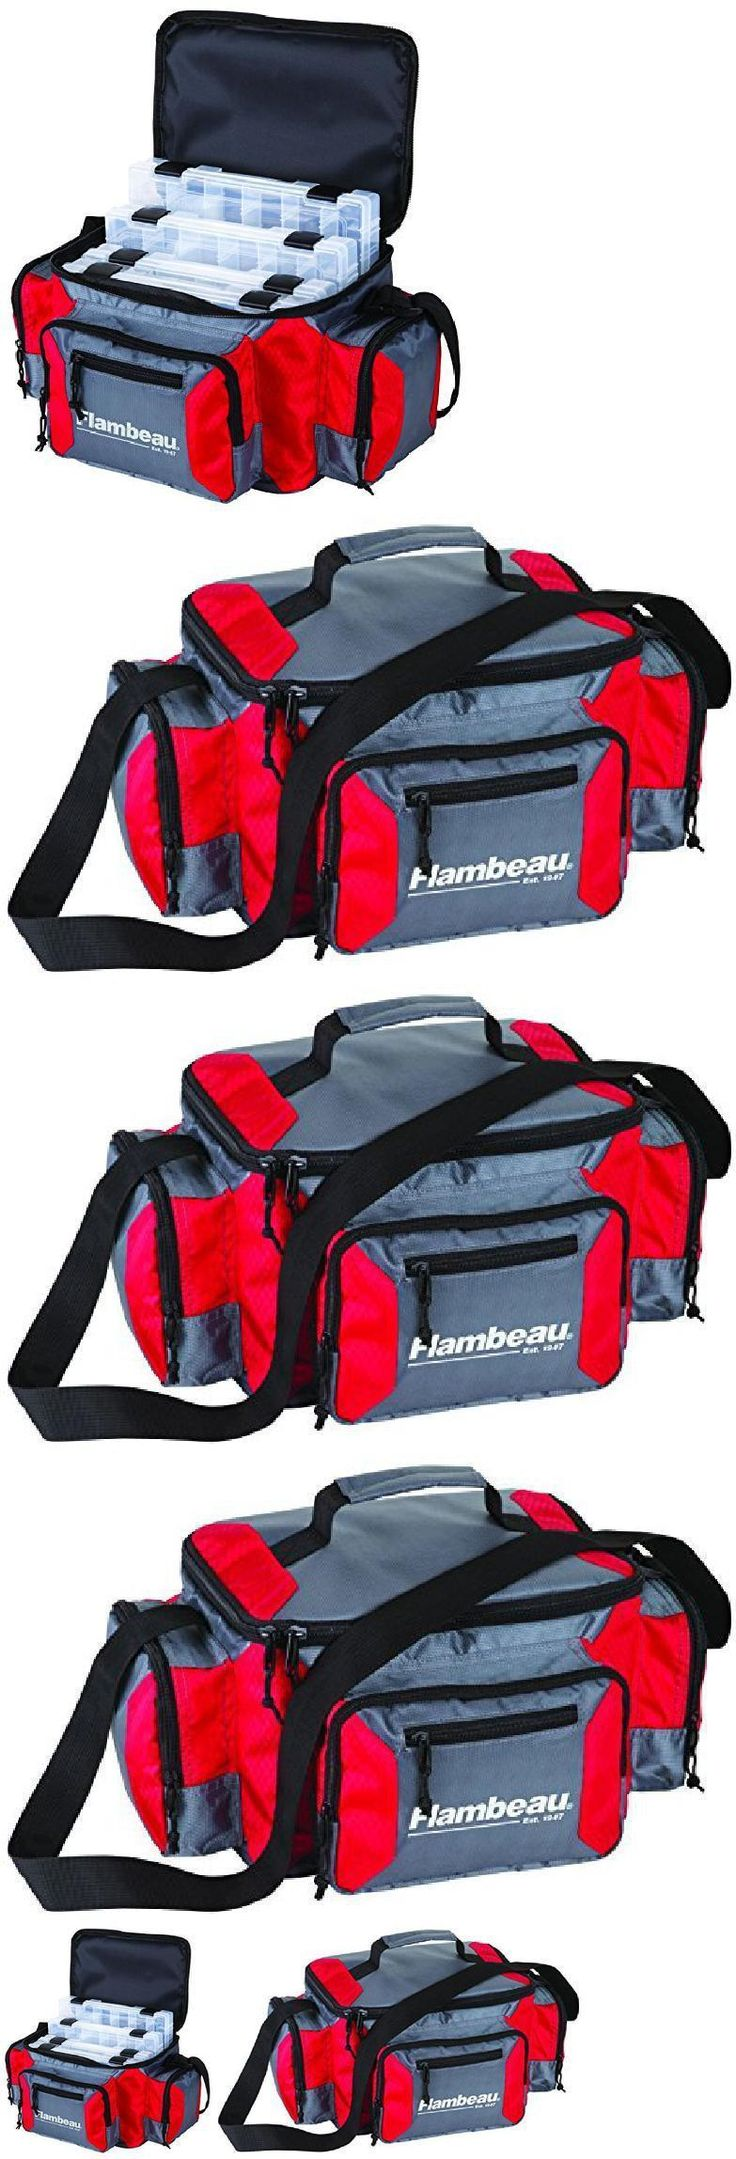 Tackle Boxes and Bags 22696: Flambeau Graphite 400 G400r Red Soft Tackle Box Bag Containers Fishing 6188Tb -> BUY IT NOW ONLY: $35.99 on eBay!